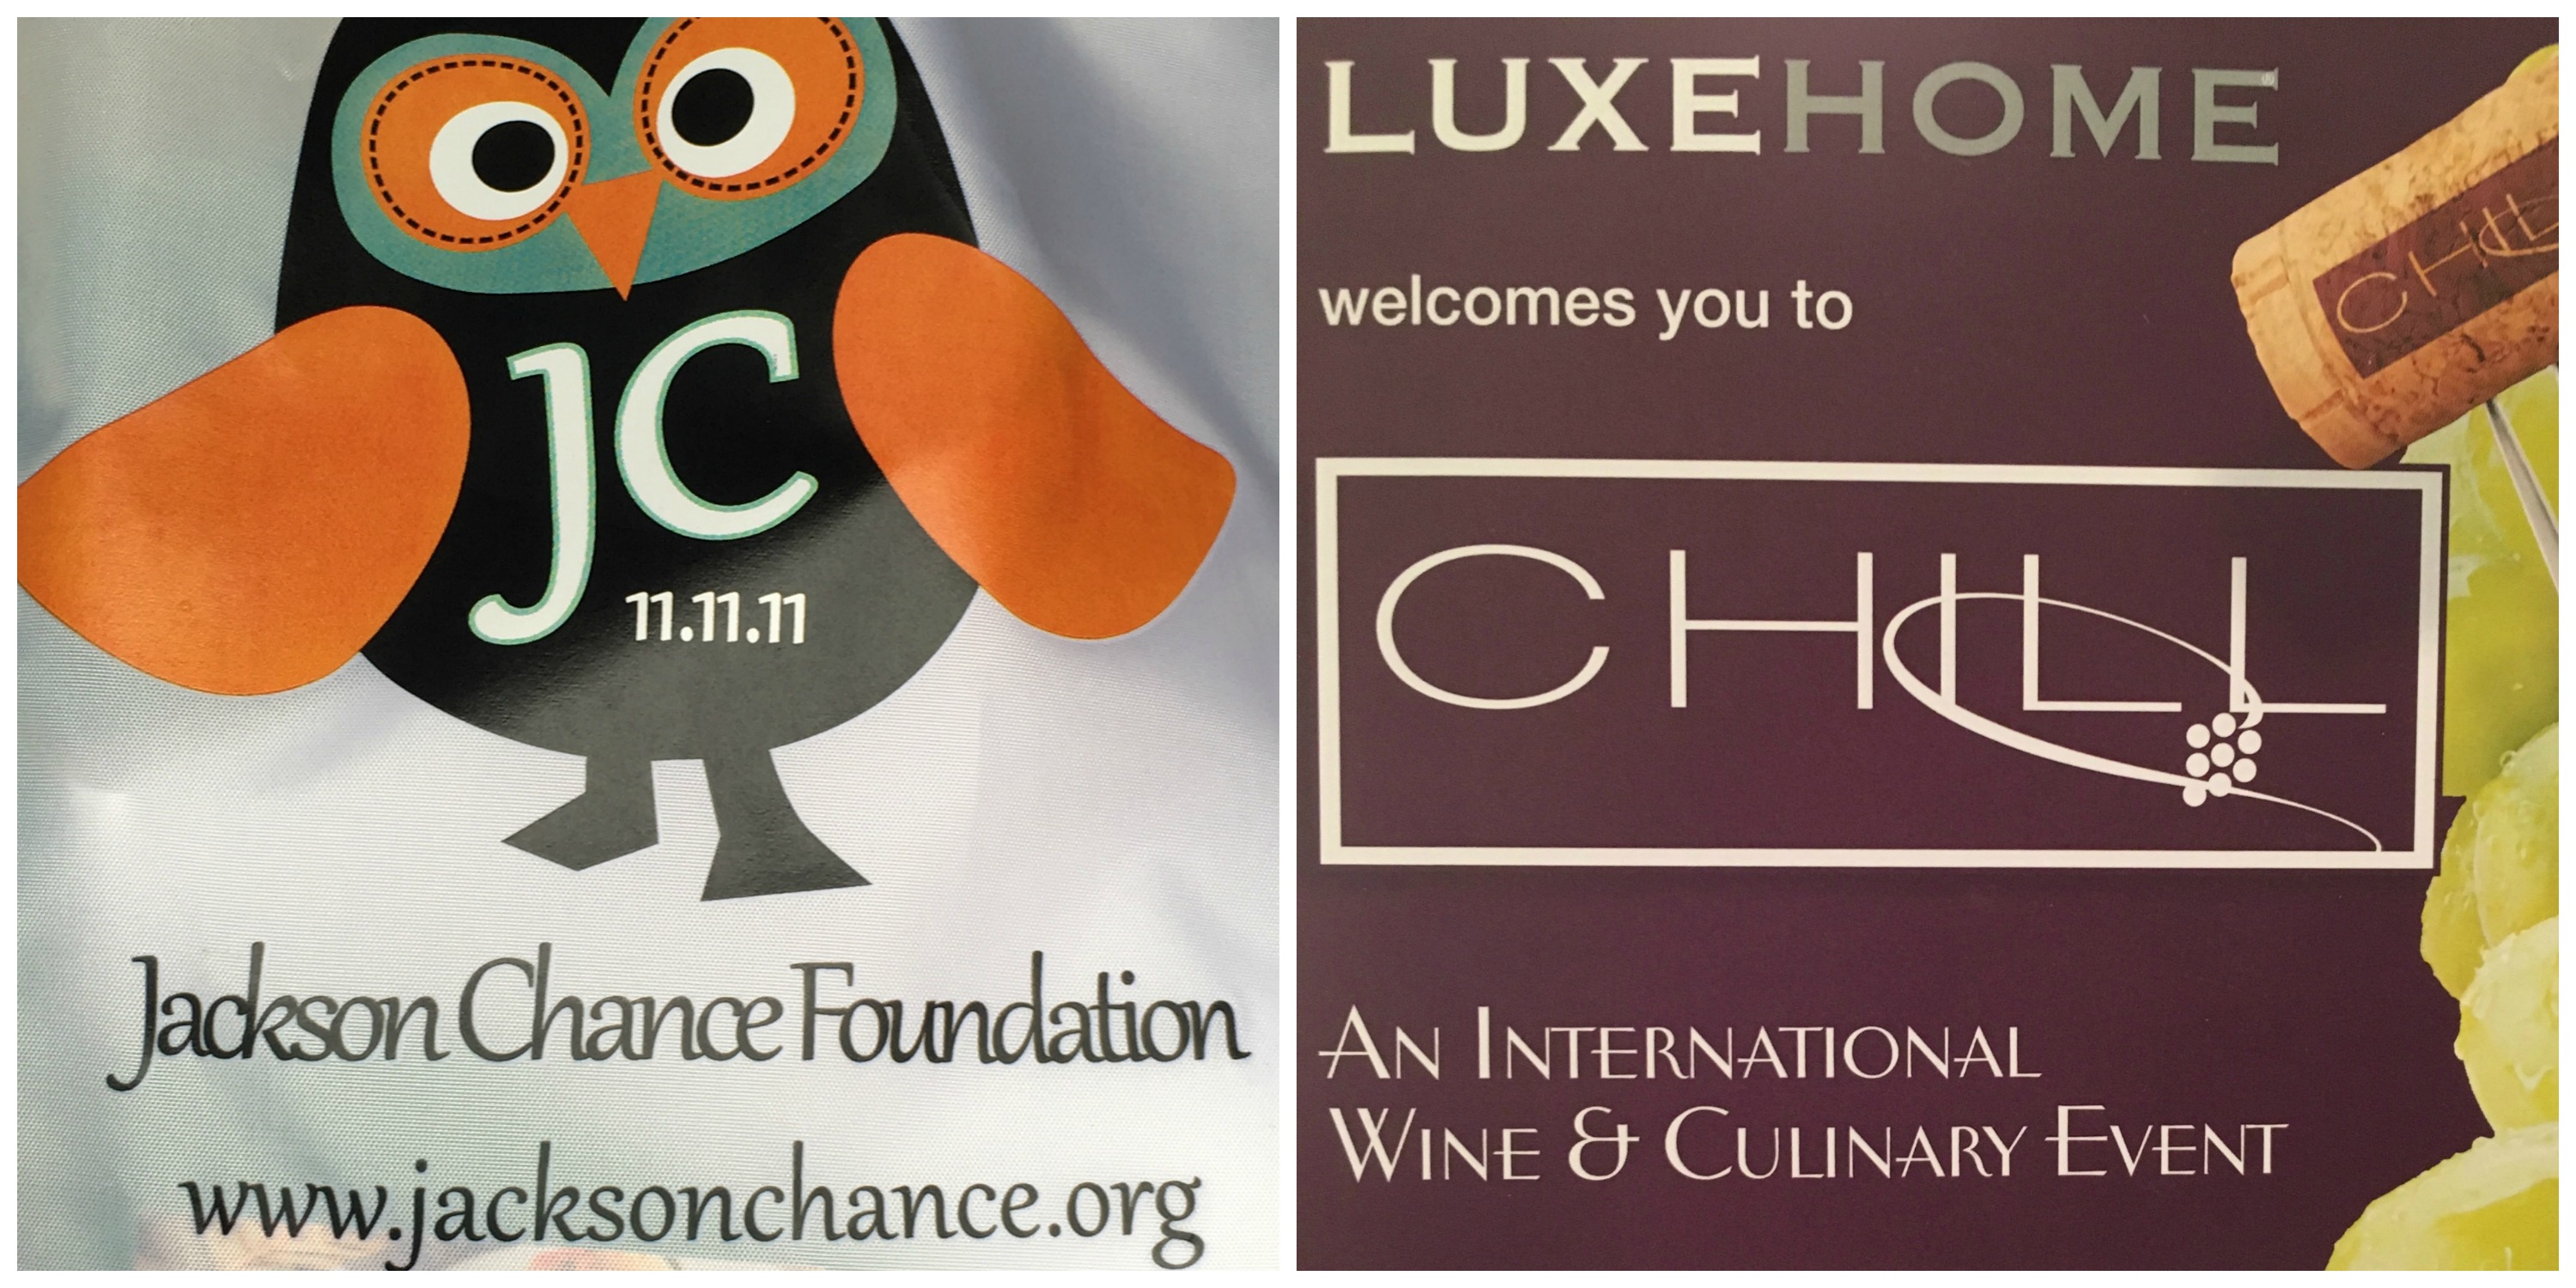 luxehome jackson chance picm collage